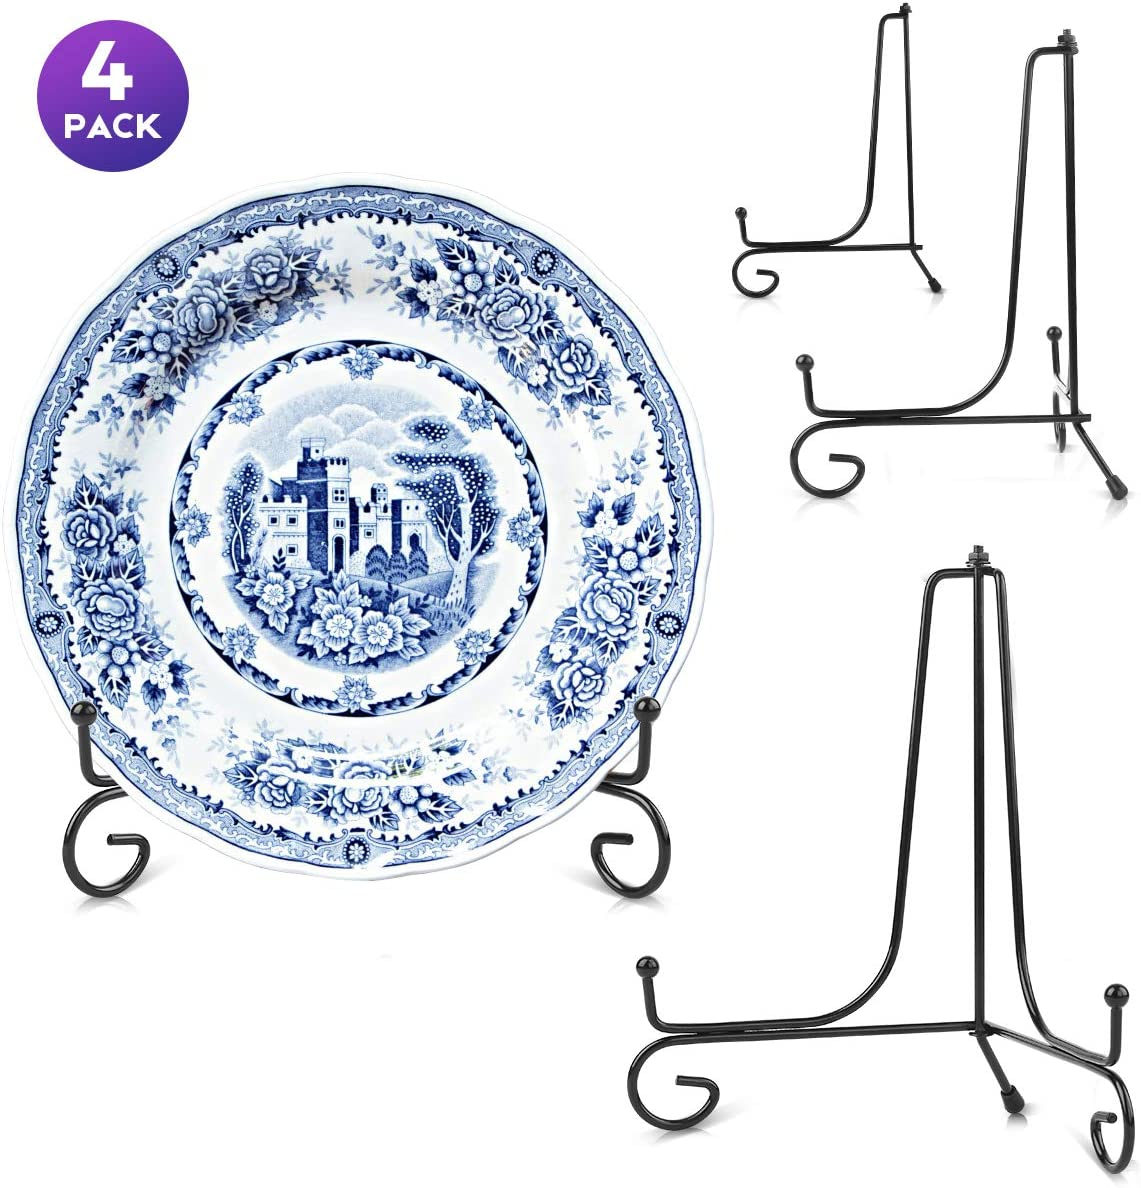 [Anti-Slip Upgraded ] 8'' Plate Iron Display Stand Set of 4 Packs - Easels for Display Picture Frames, Cook Books, Decorative Plates, Art and More (8'')